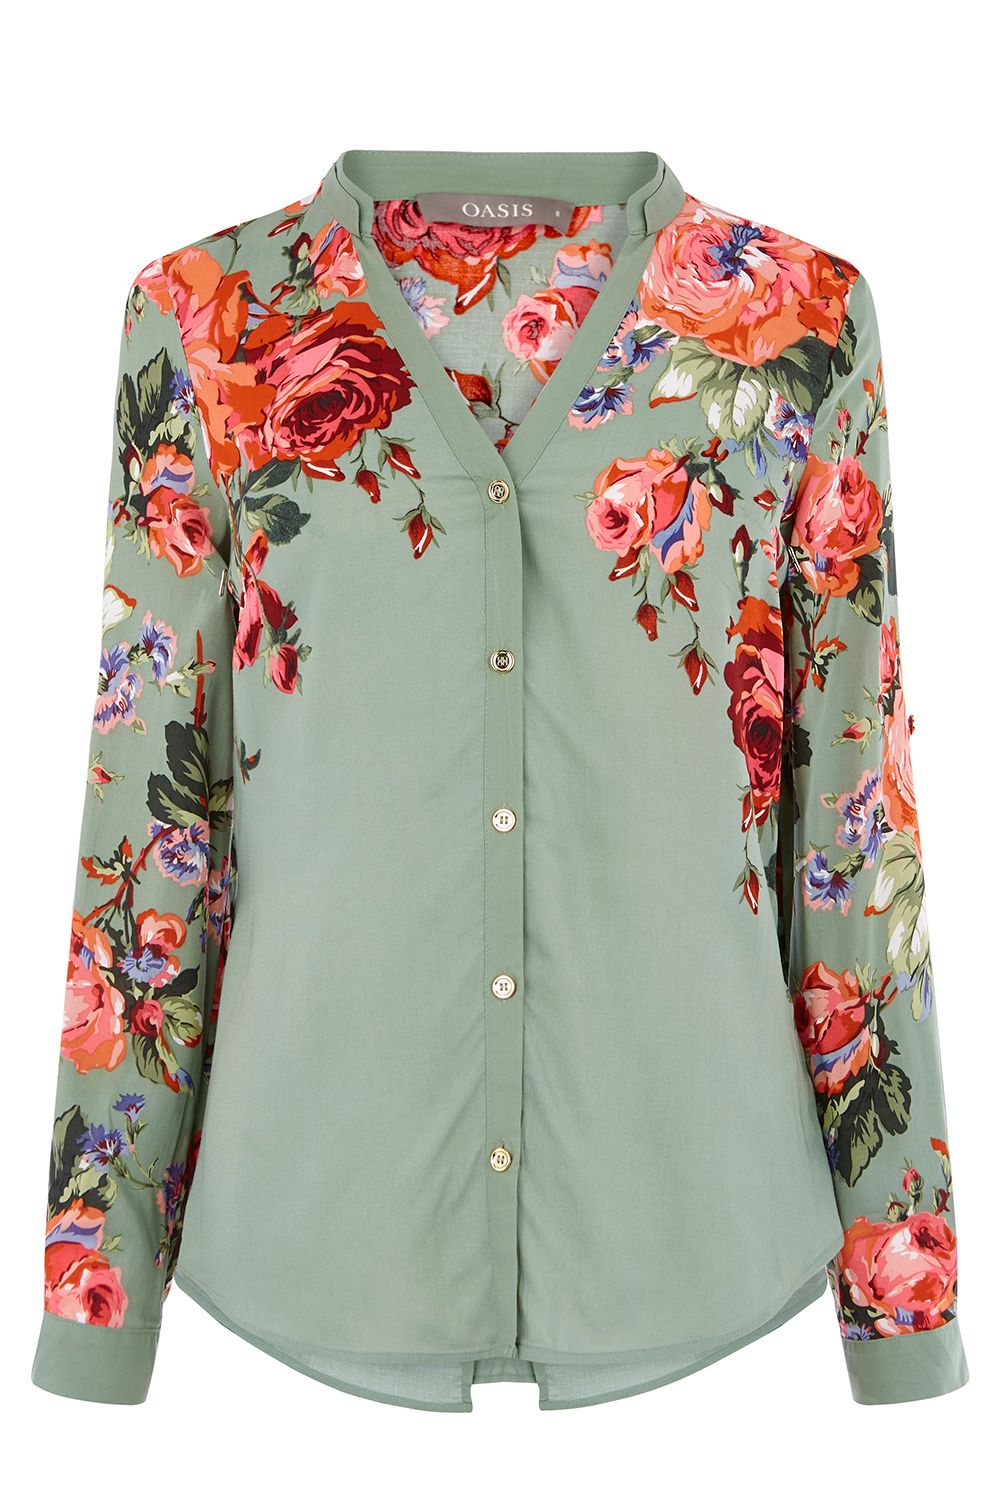 Oasis ROSE PRINT SHIRT, Multi-Coloured